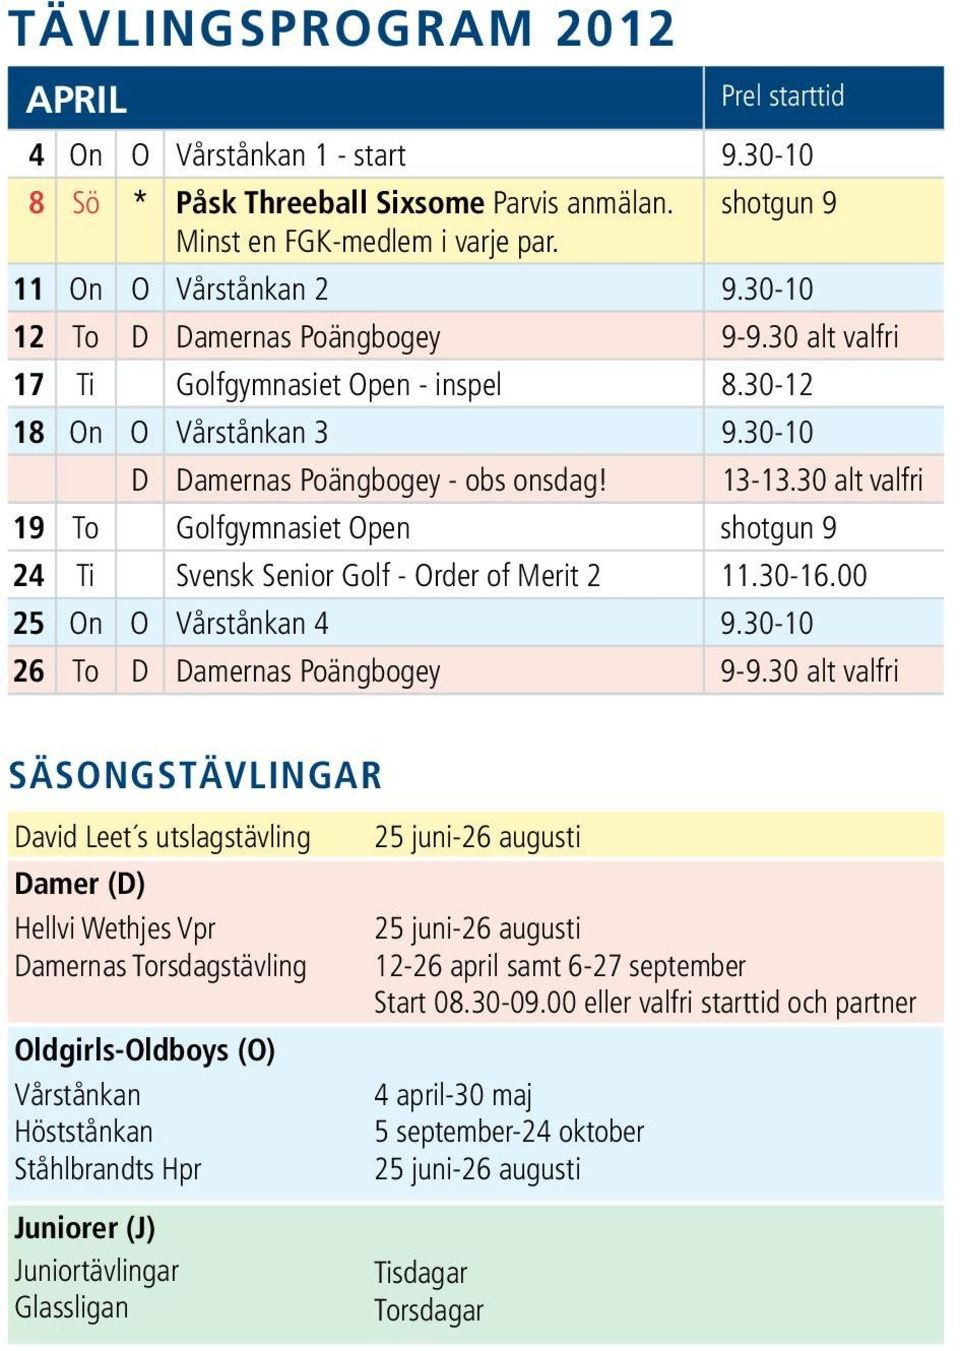 30 alt valfri 19 To Golfgymnasiet Open shotgun 9 24 Ti Svensk Senior Golf - Order of Merit 2 11.30-16.00 25 On O Vårstånkan 4 9.30-10 26 To D Damernas Poängbogey 9-9.